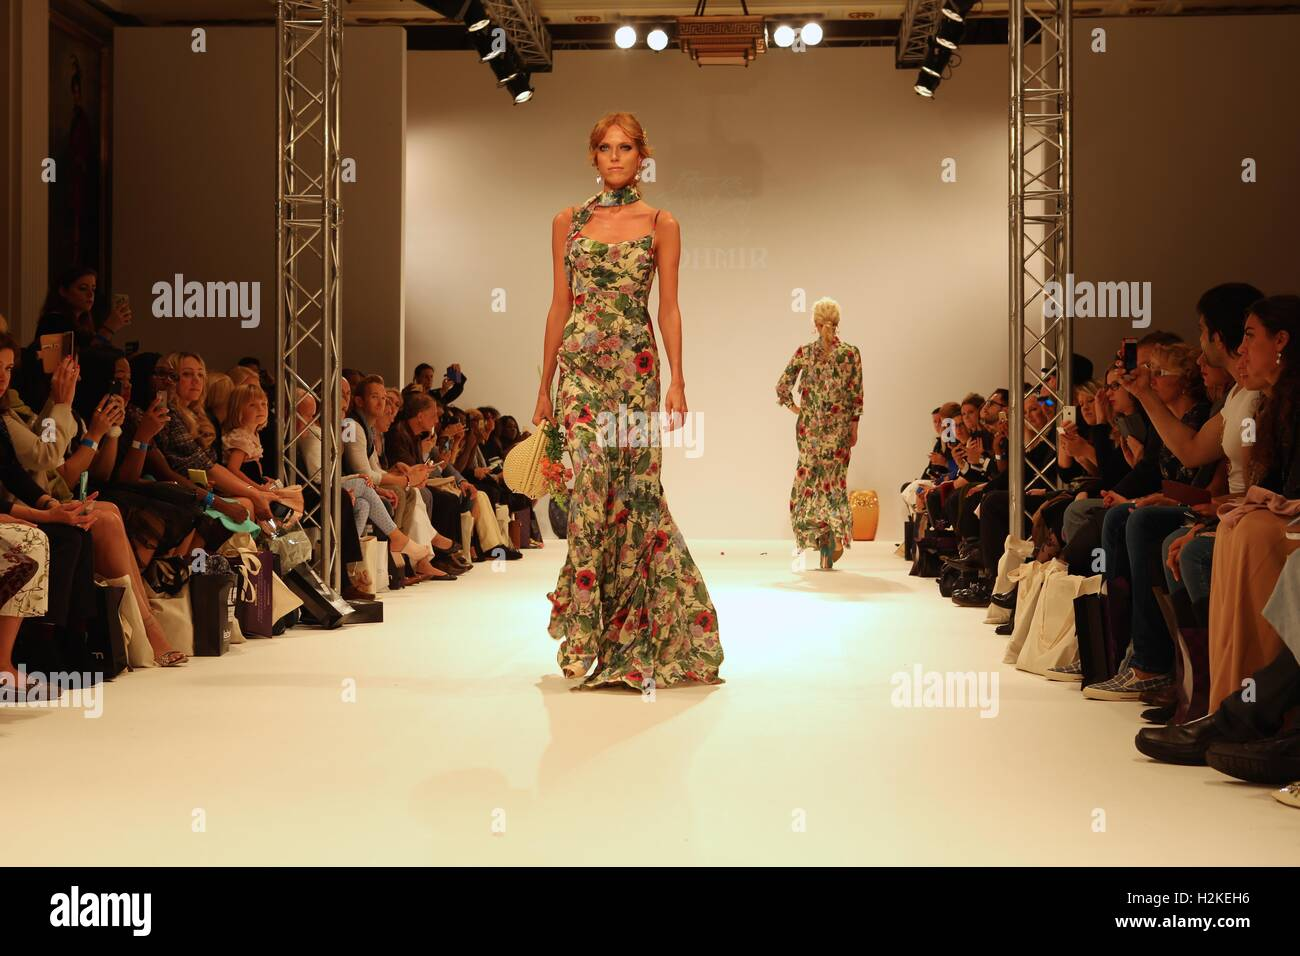 Rocky S Is A Indian Designer High Resolution Stock Photography And Images Alamy